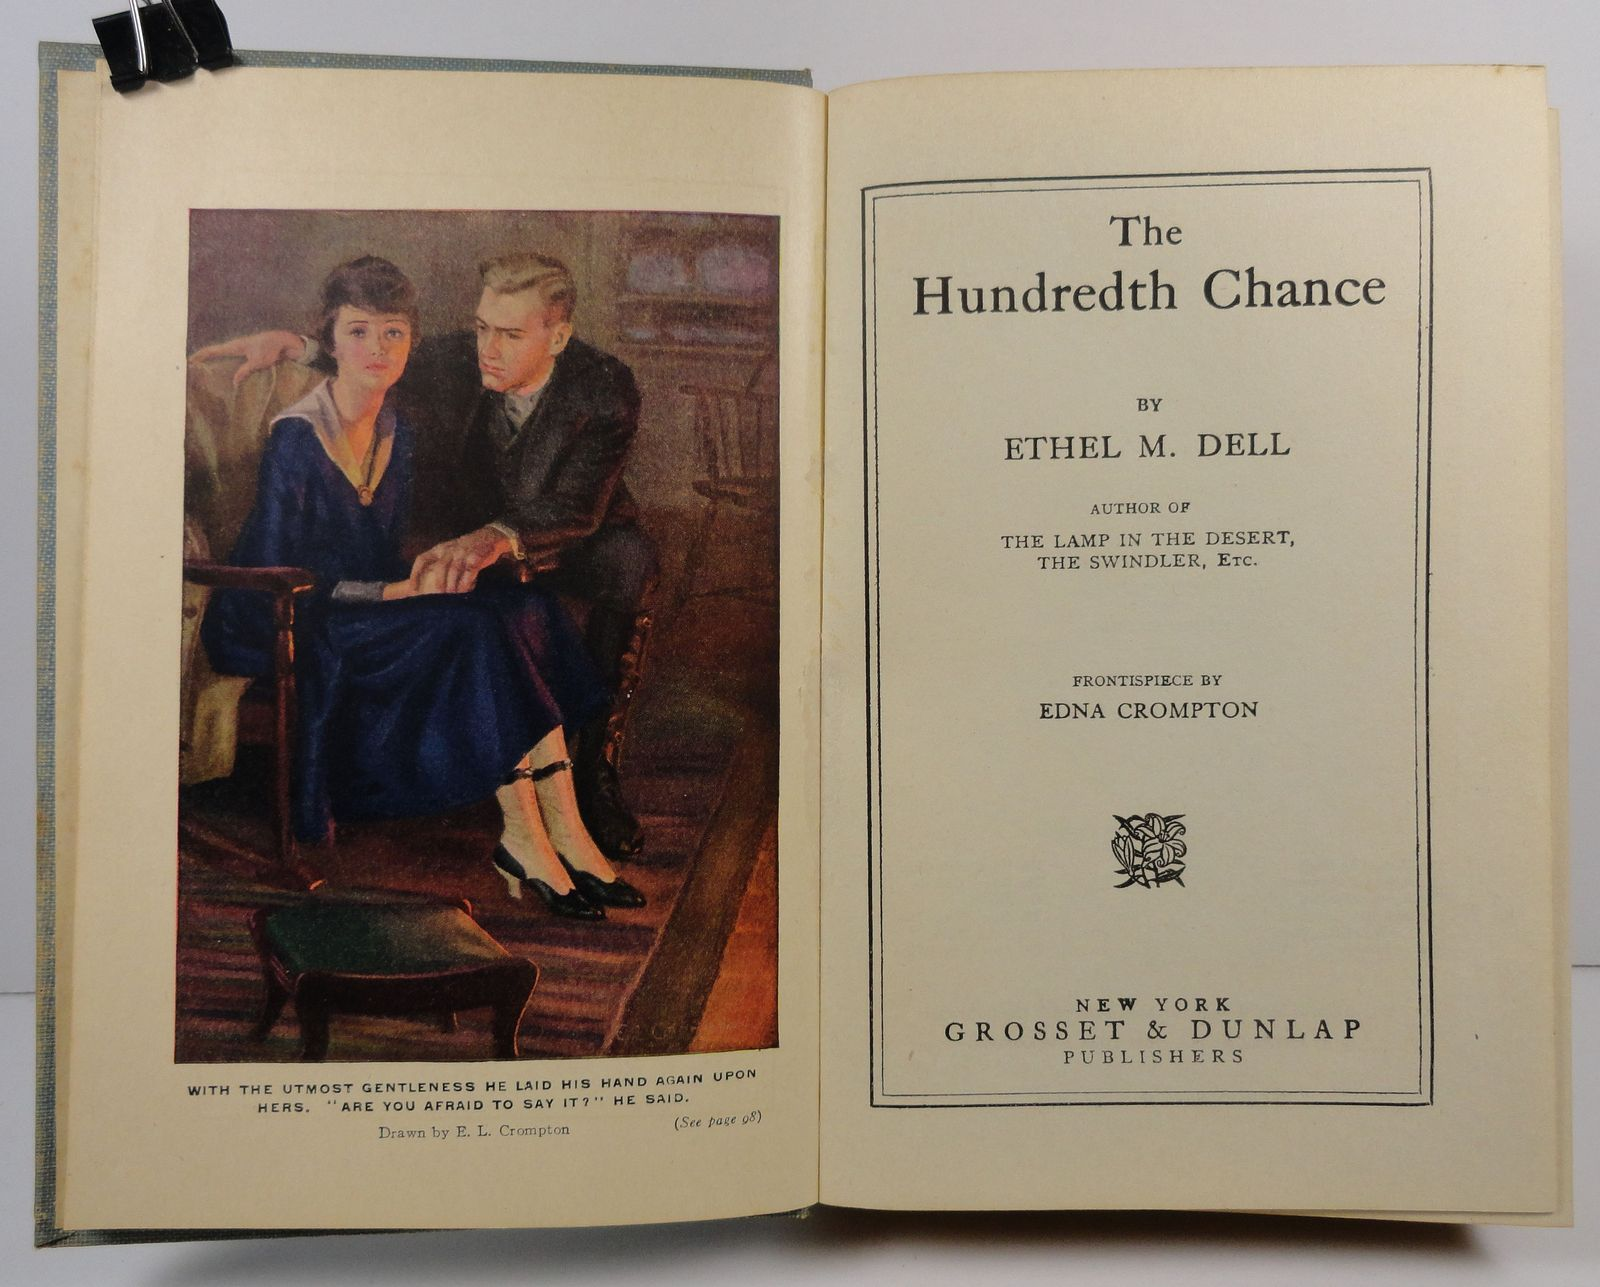 The Hundredth Chance by Ethel M. Dell